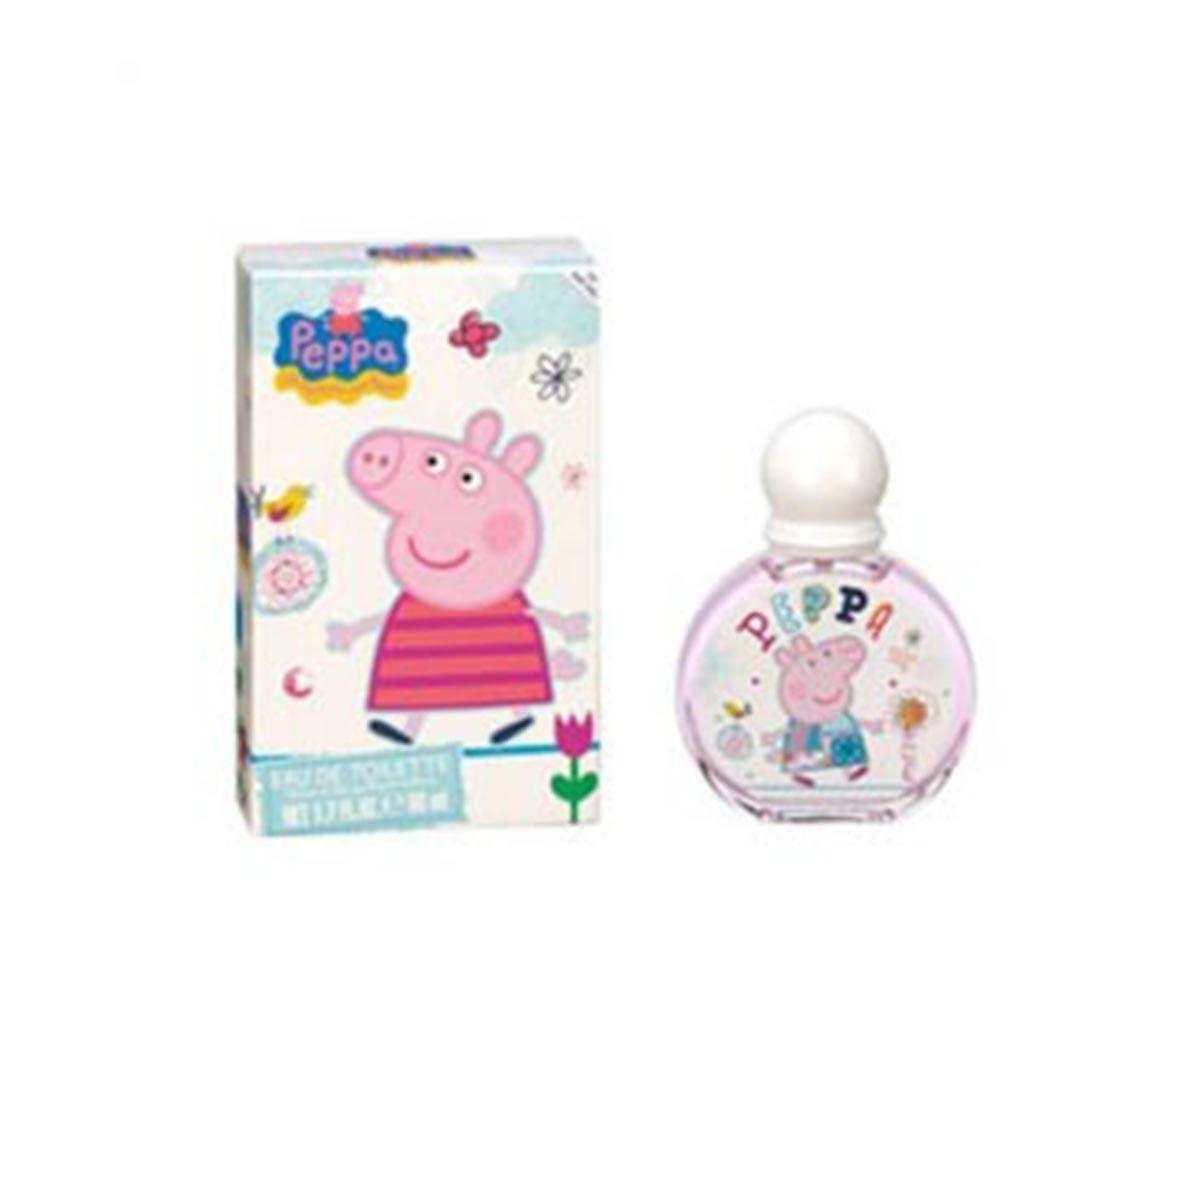 Consumo fragrances Peppa Pig Eau De Toilette Miniatures 7ml